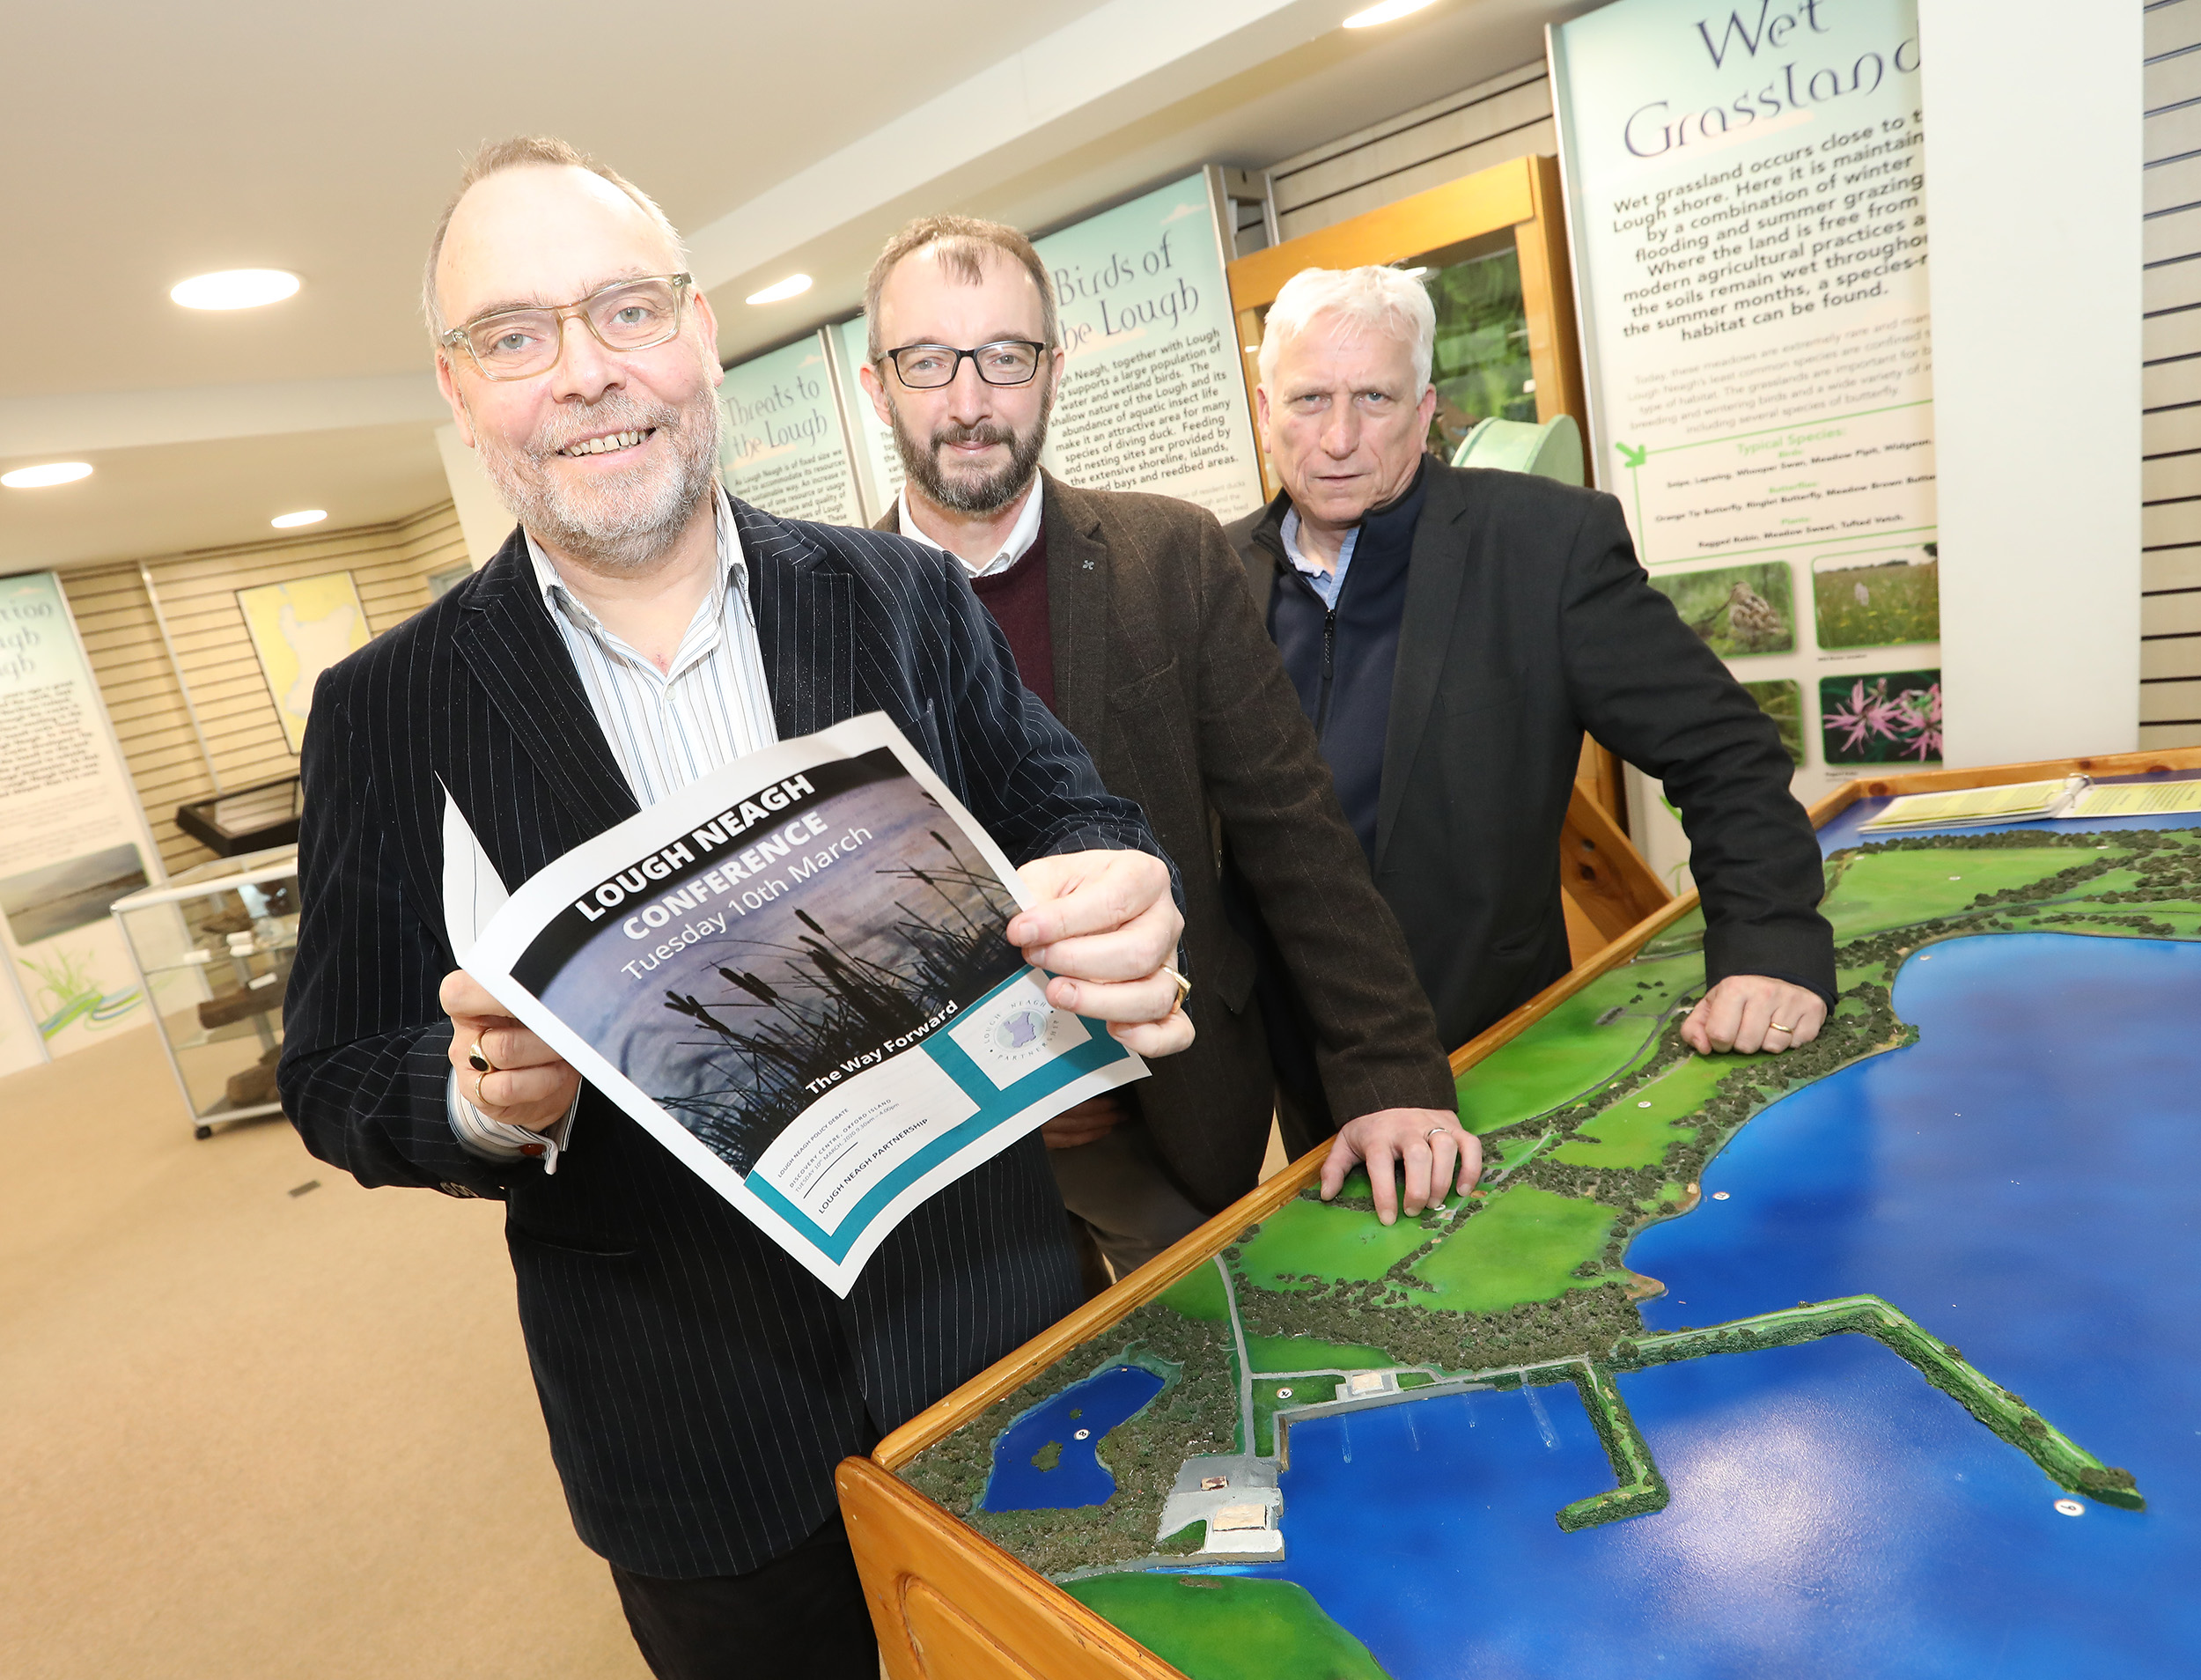 ALL PARTY DEBATE ON WAY FORWARD FOR LOUGH NEAGH